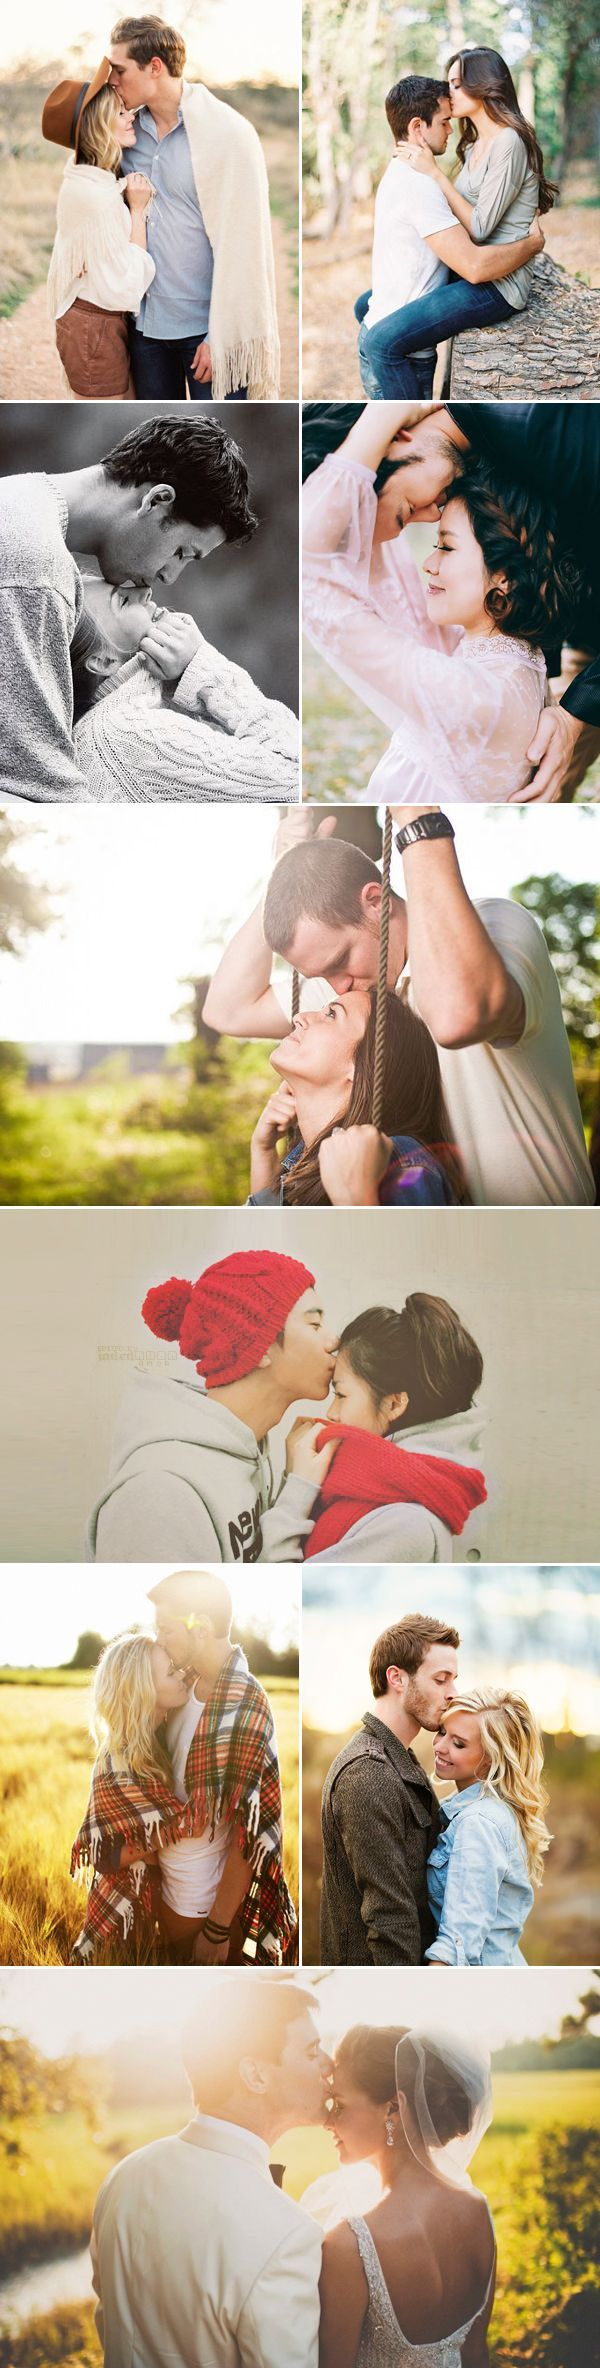 37 Must Try Cute Couple Photo Poses - From Praise Wedding Online Magazine | Glamour Shots